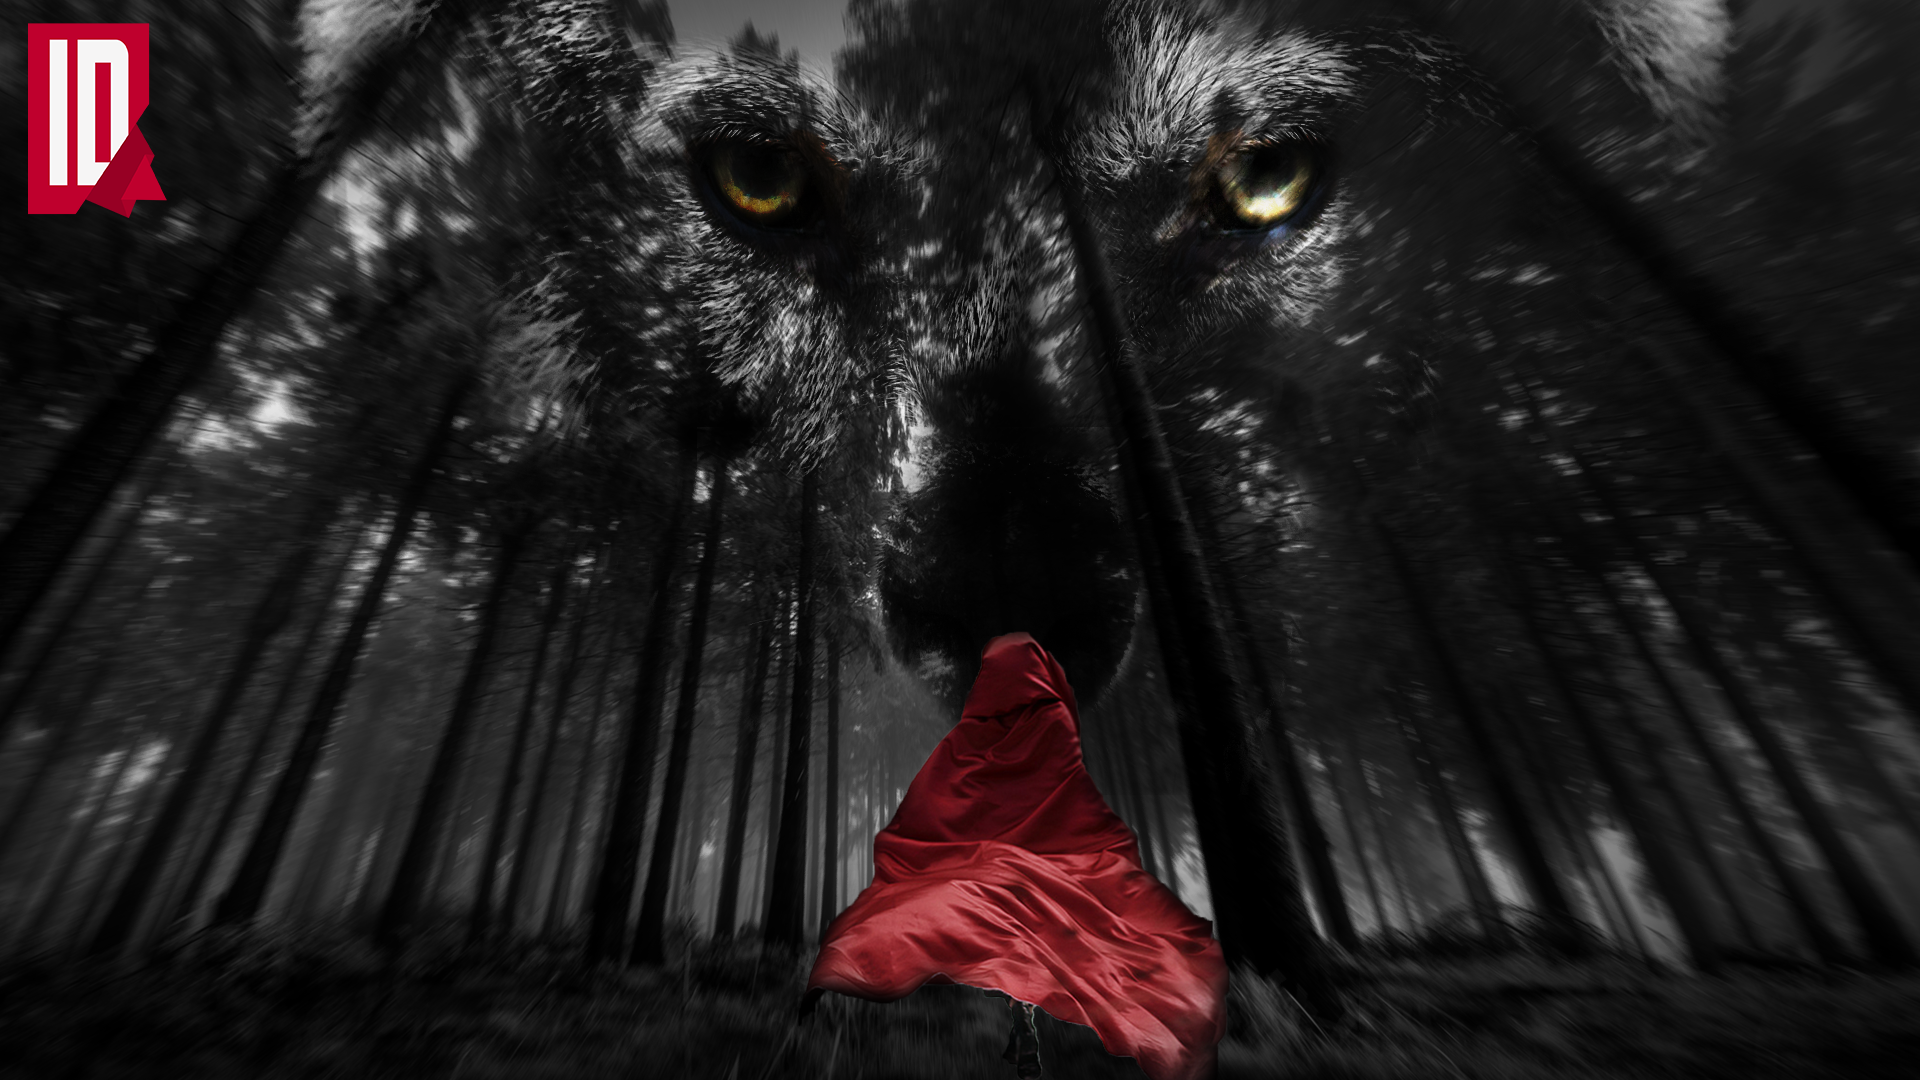 little red riding hood wallpaper by individualdesign on